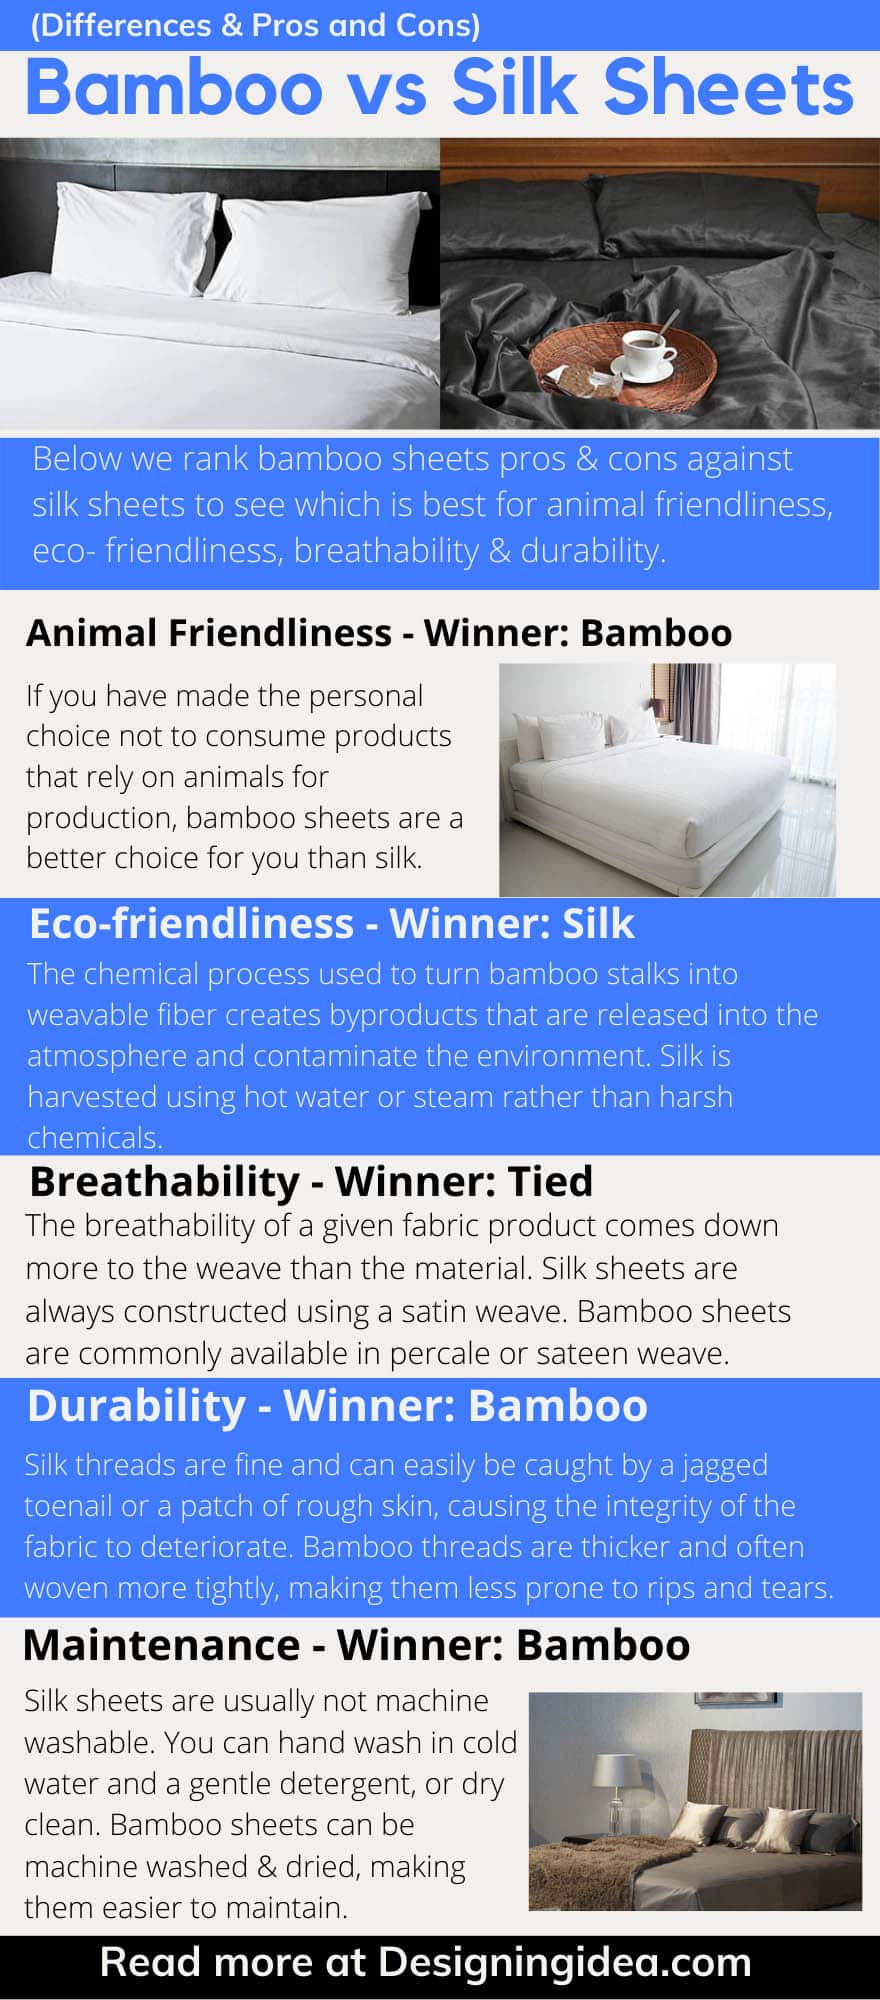 Bamboo vs silk sheets pros cons infographic